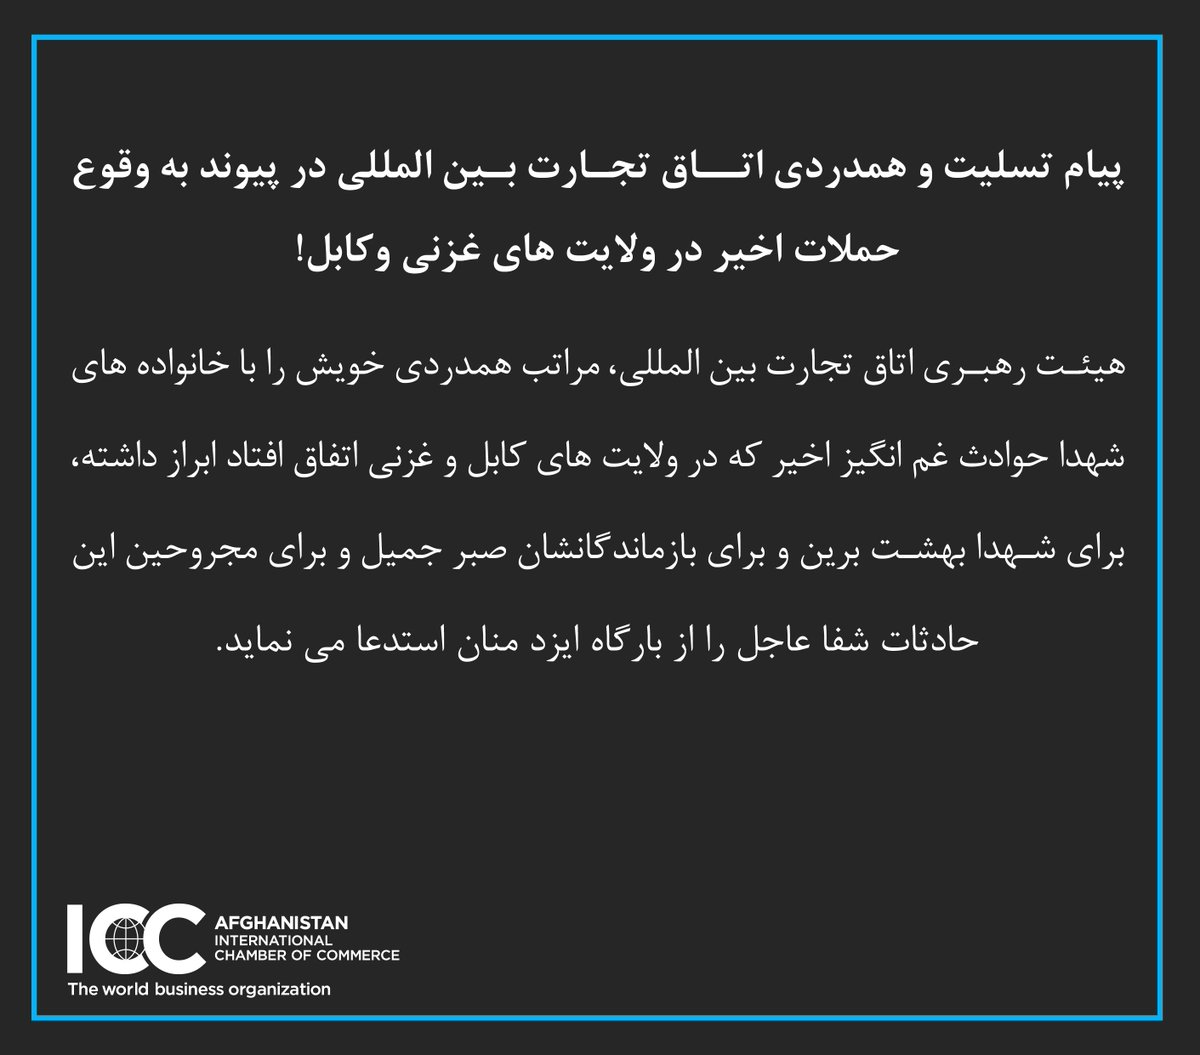 icc afghanistan on twitter the message of condolences and sympathy